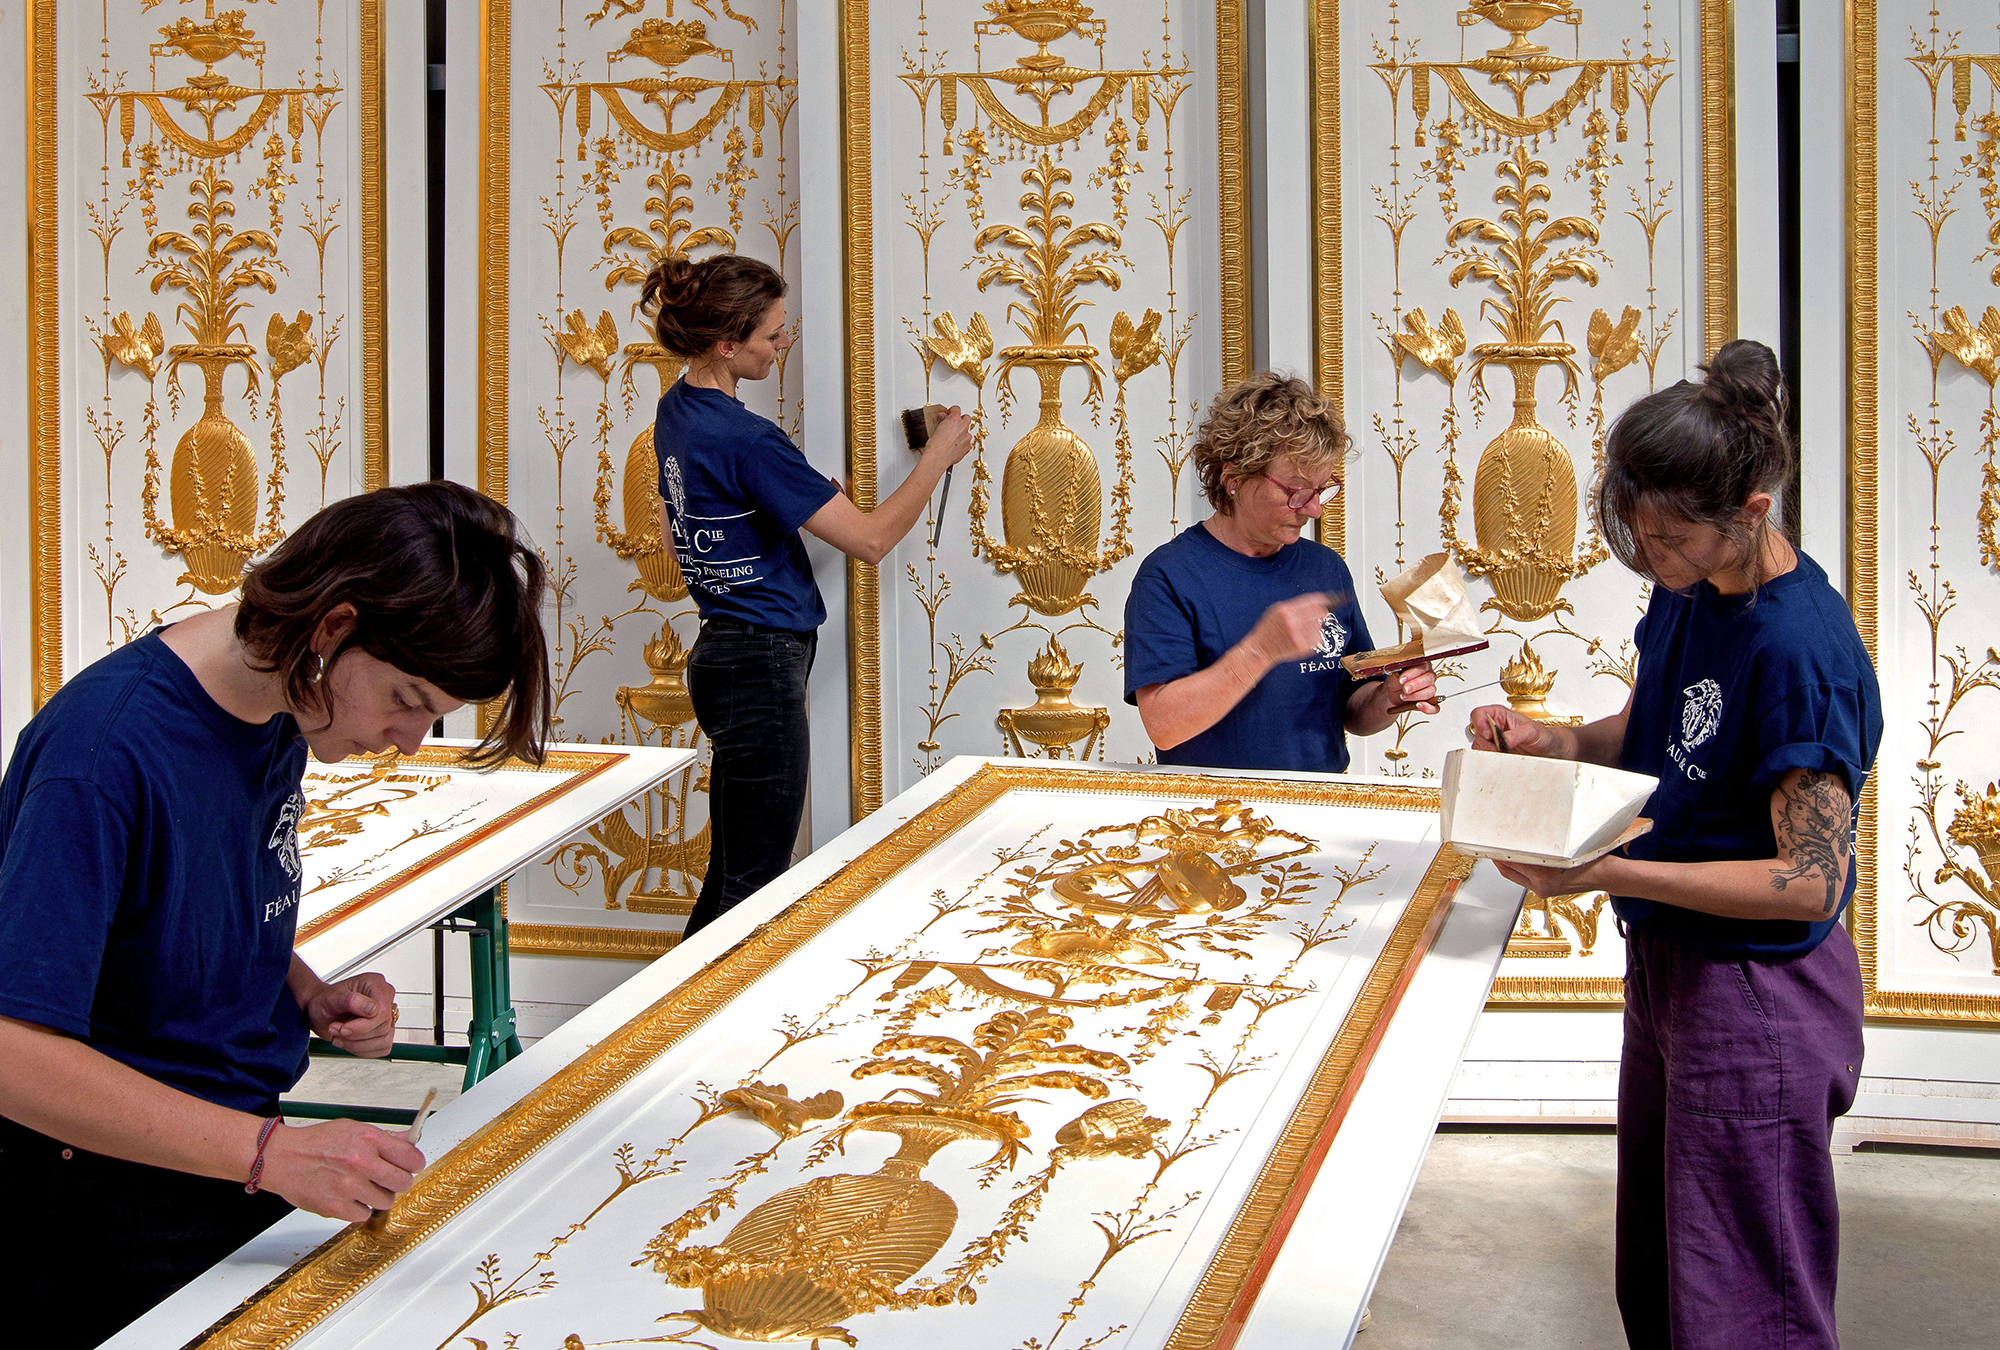 The craft of fine gilding on custom-made paneled décor